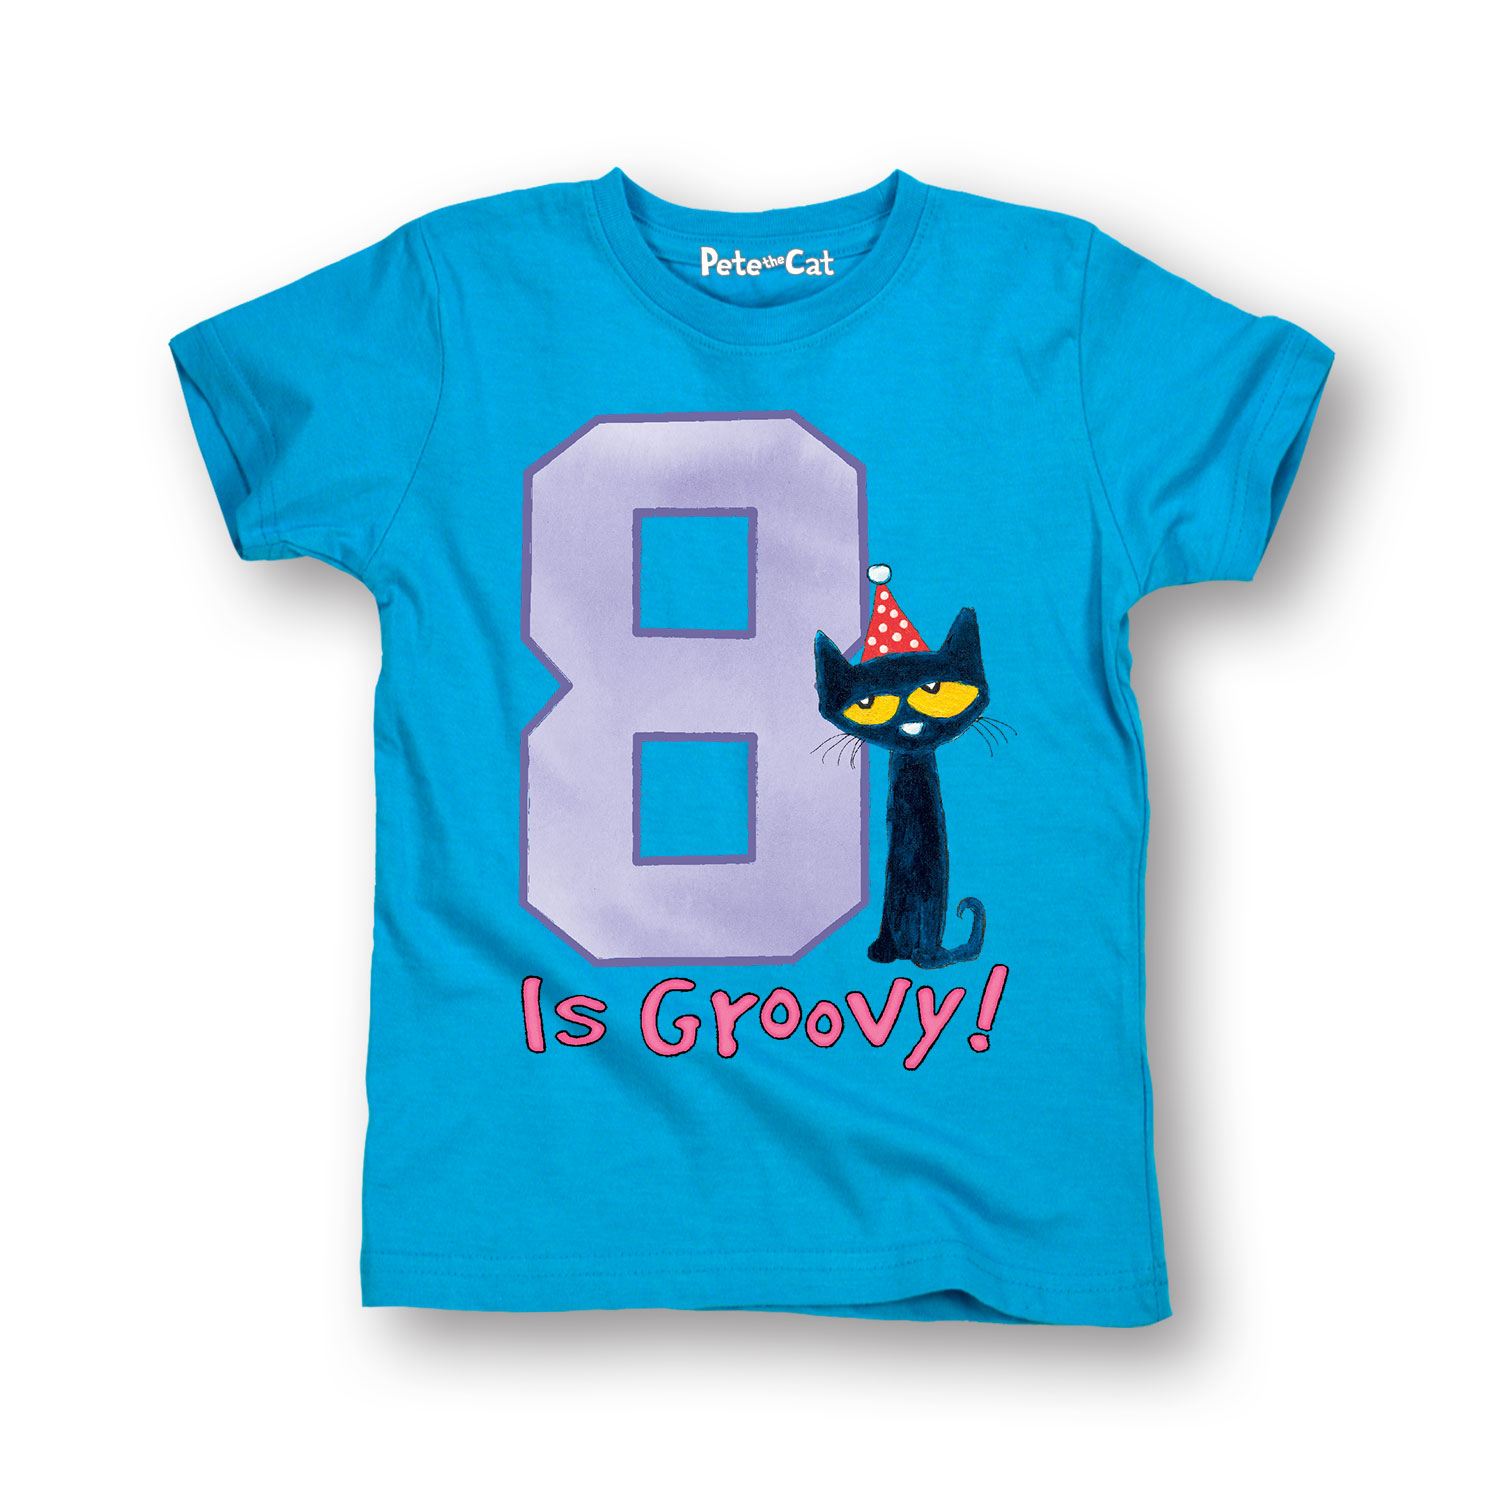 Pete the Cat 8th Birthday Girls YOUTH SHORT SLEEVE TEE